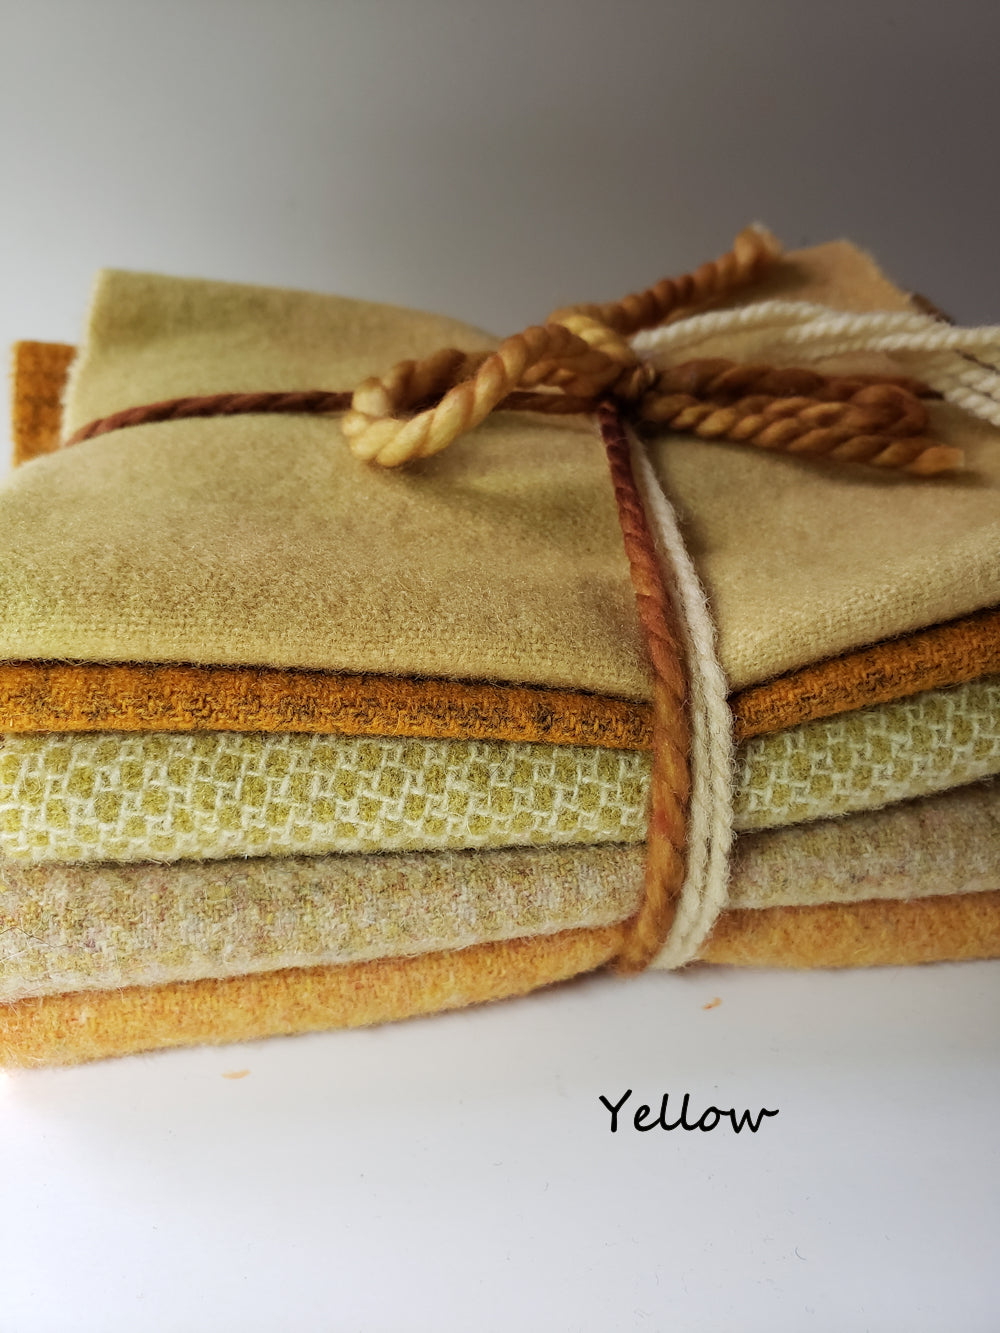 RSS148 - For the Love of Yellow - 1/2 Yard - 100% OOAK Wool Bundle for Rug Hooking or Wool Applique